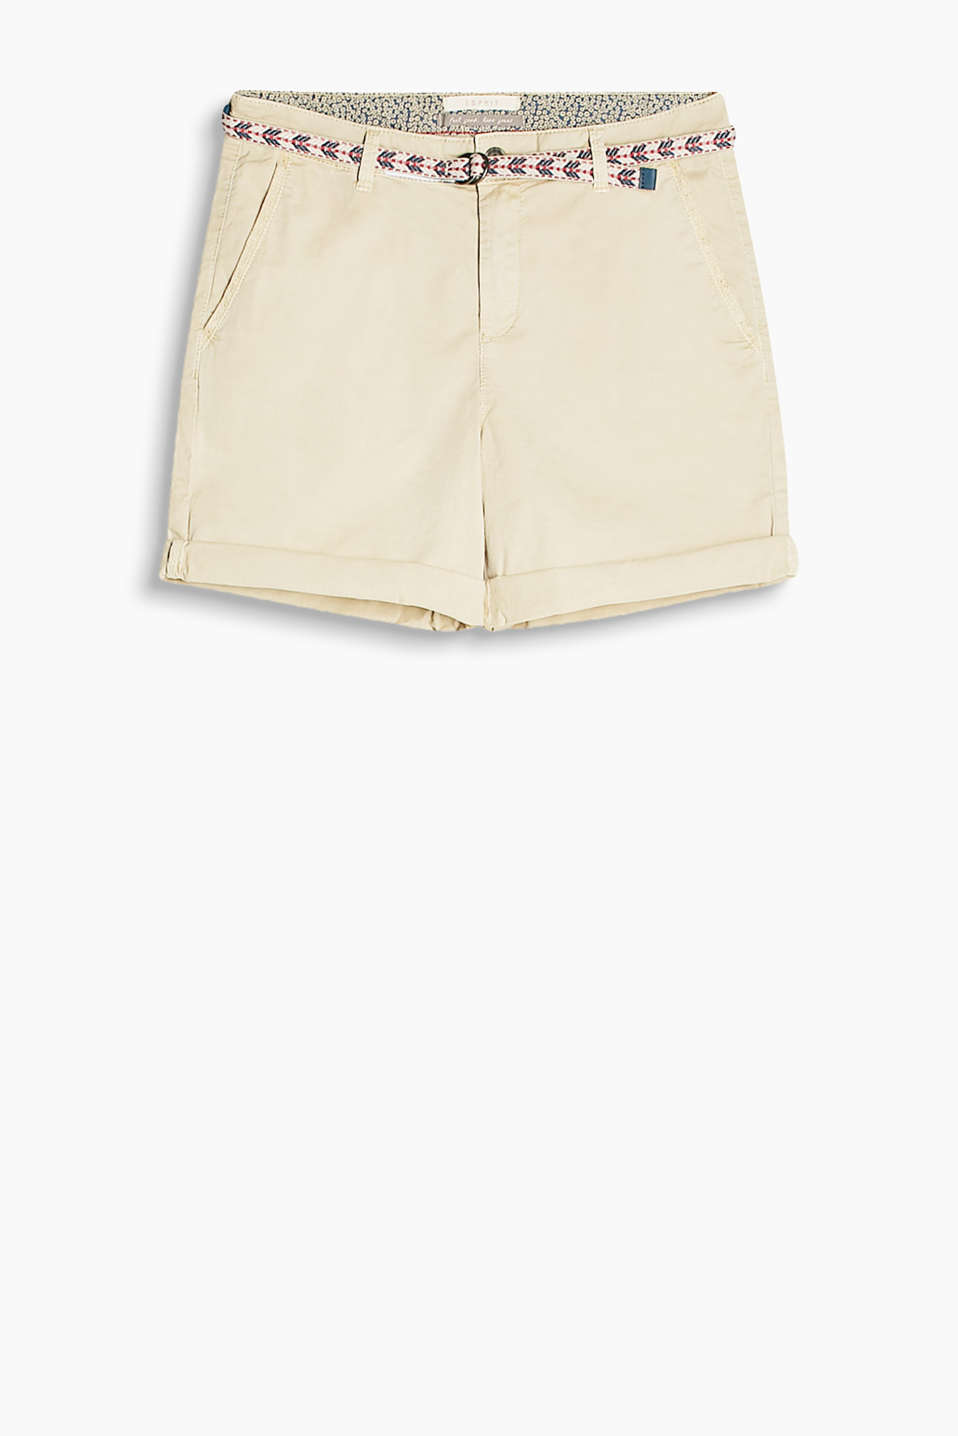 Lightweight shorts in a washed look with a colourful woven belt, cotton stretch